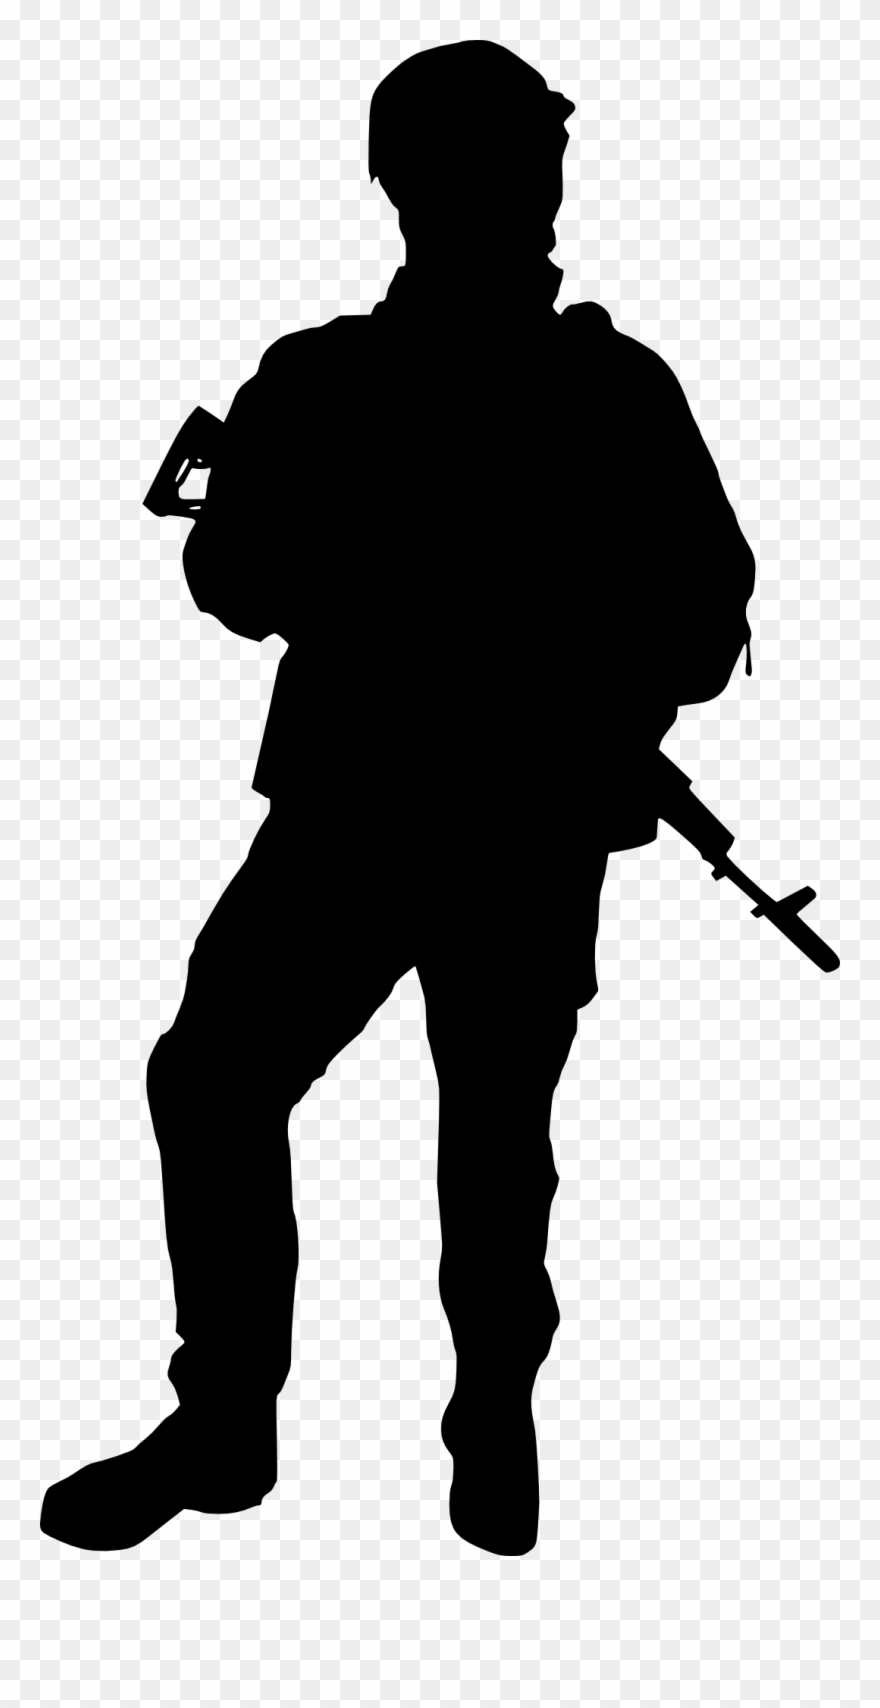 silhouette of soldier ww1 soldiers silhouette at getdrawings free download of silhouette soldier